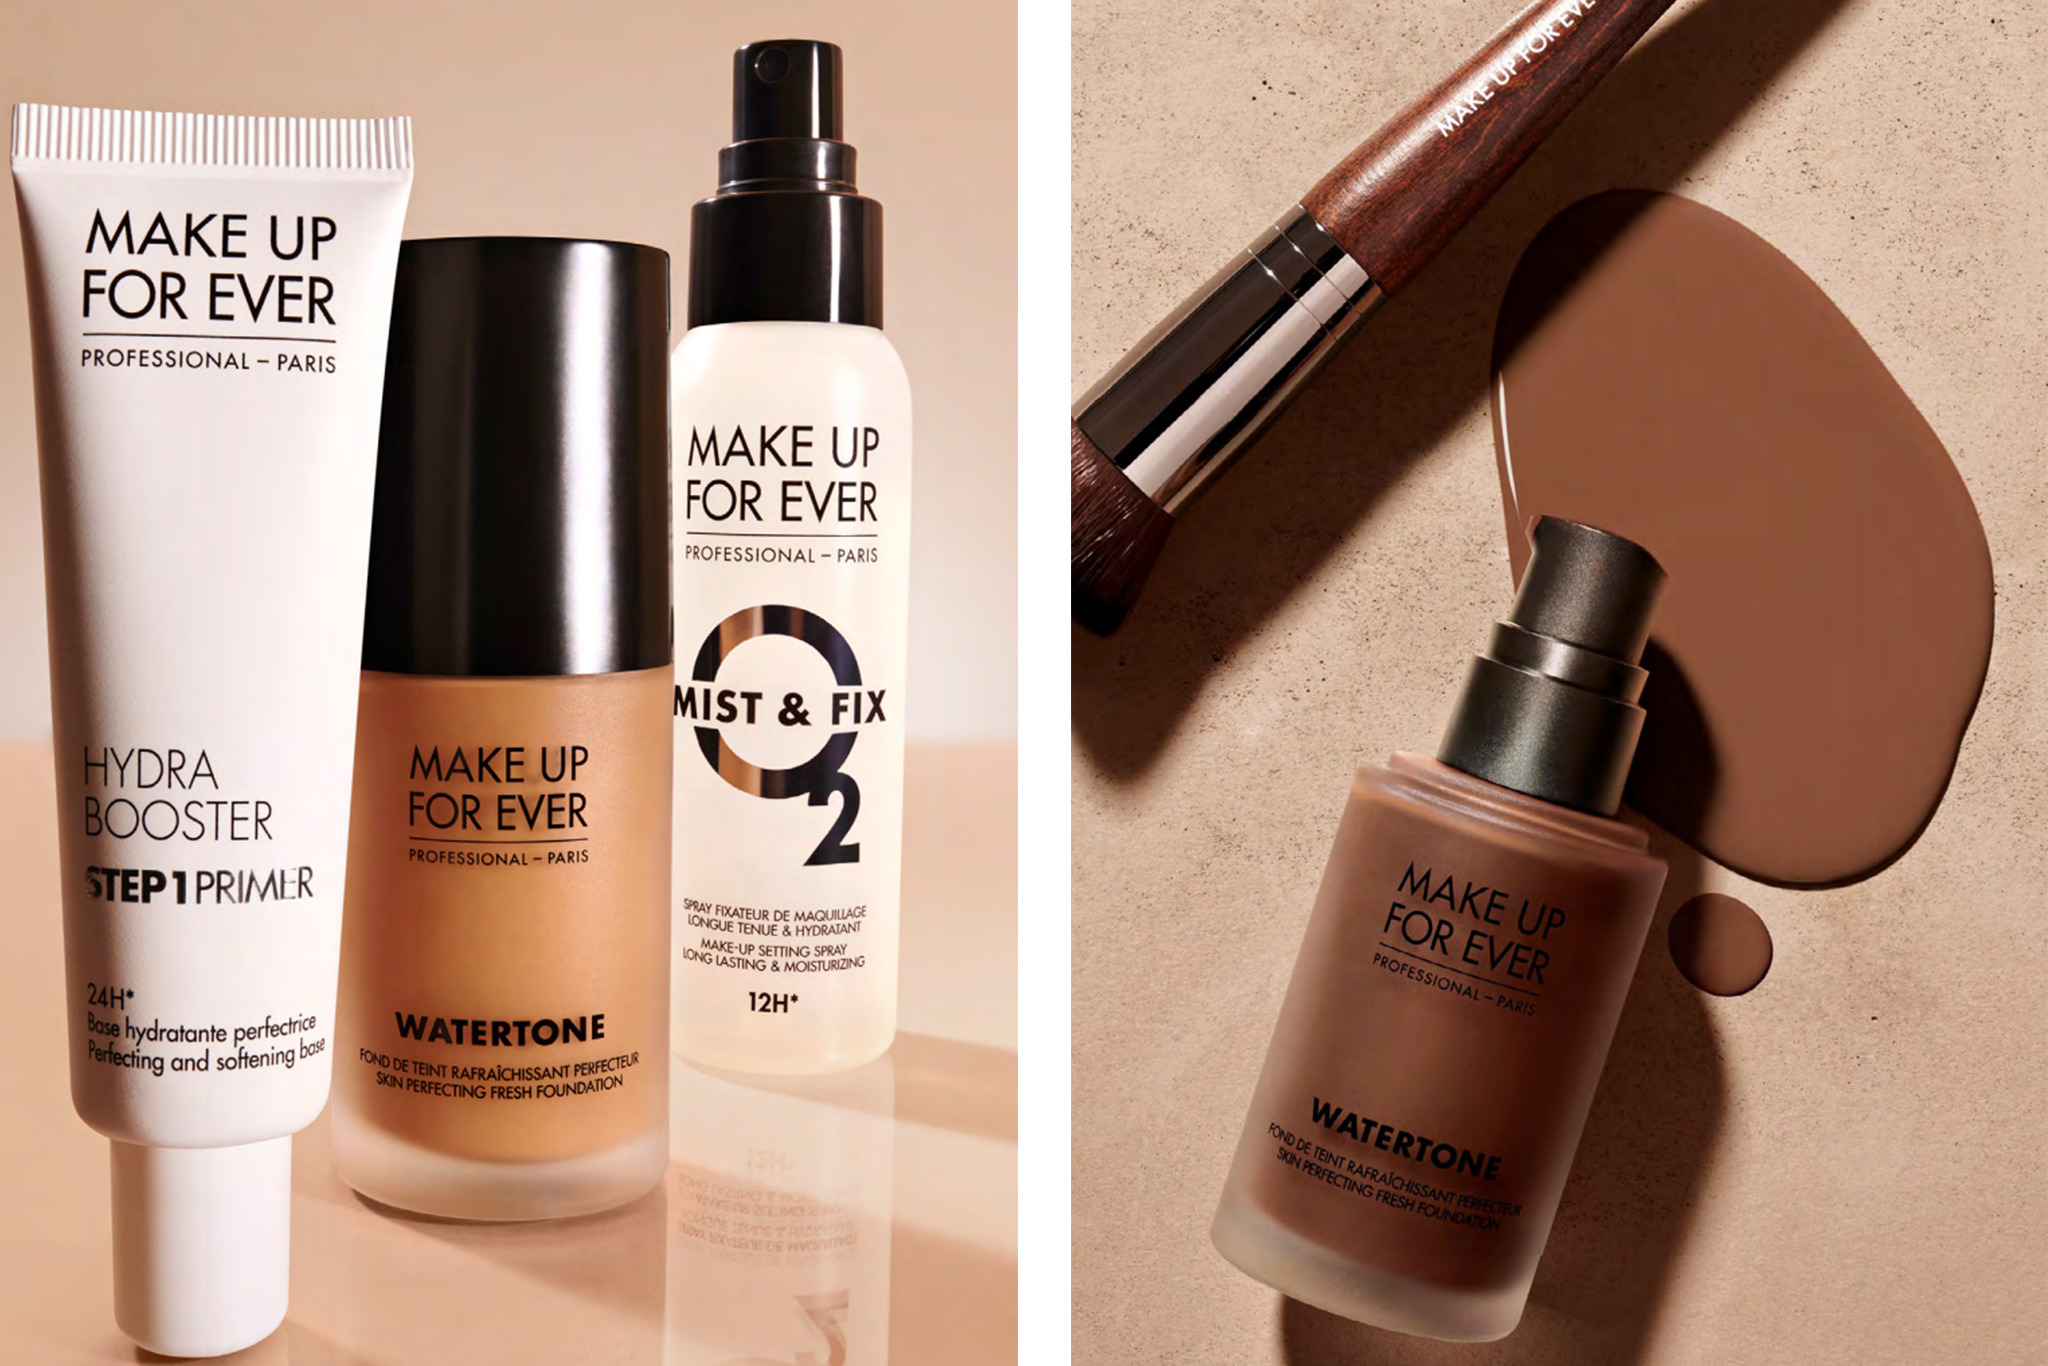 Make Up For Ever products